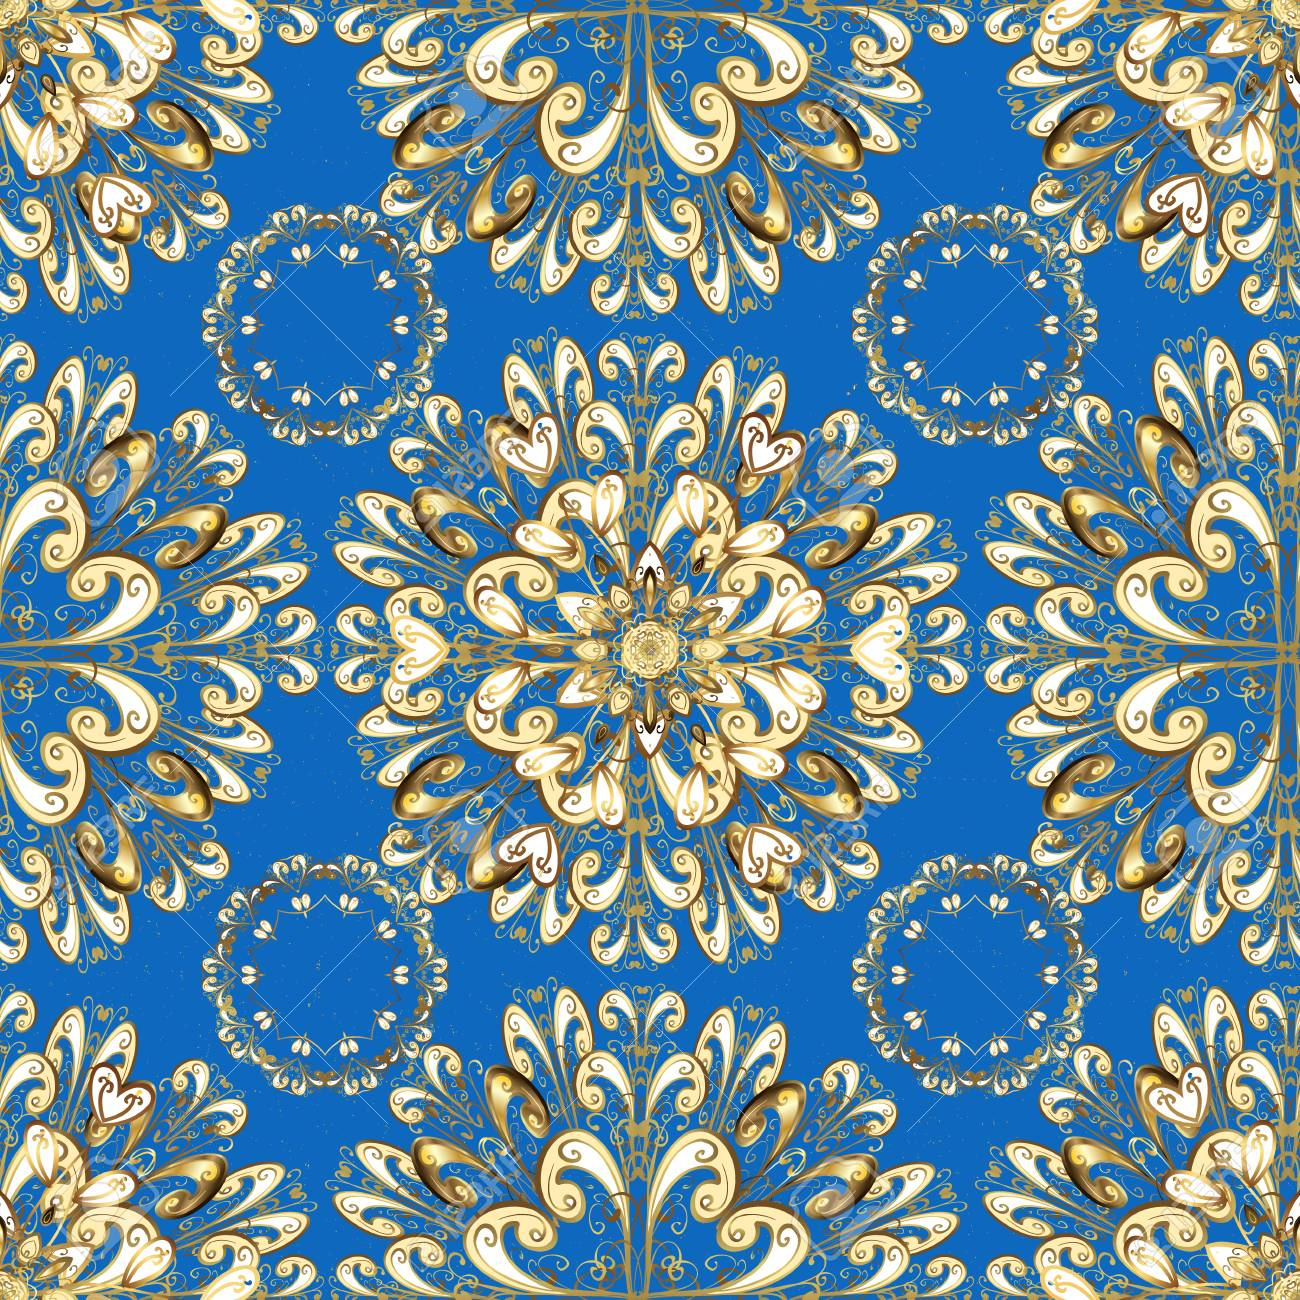 Blue On Background Royal Luxury Golden Baroque Damask Vintage Vector Pattern Wallpaper With